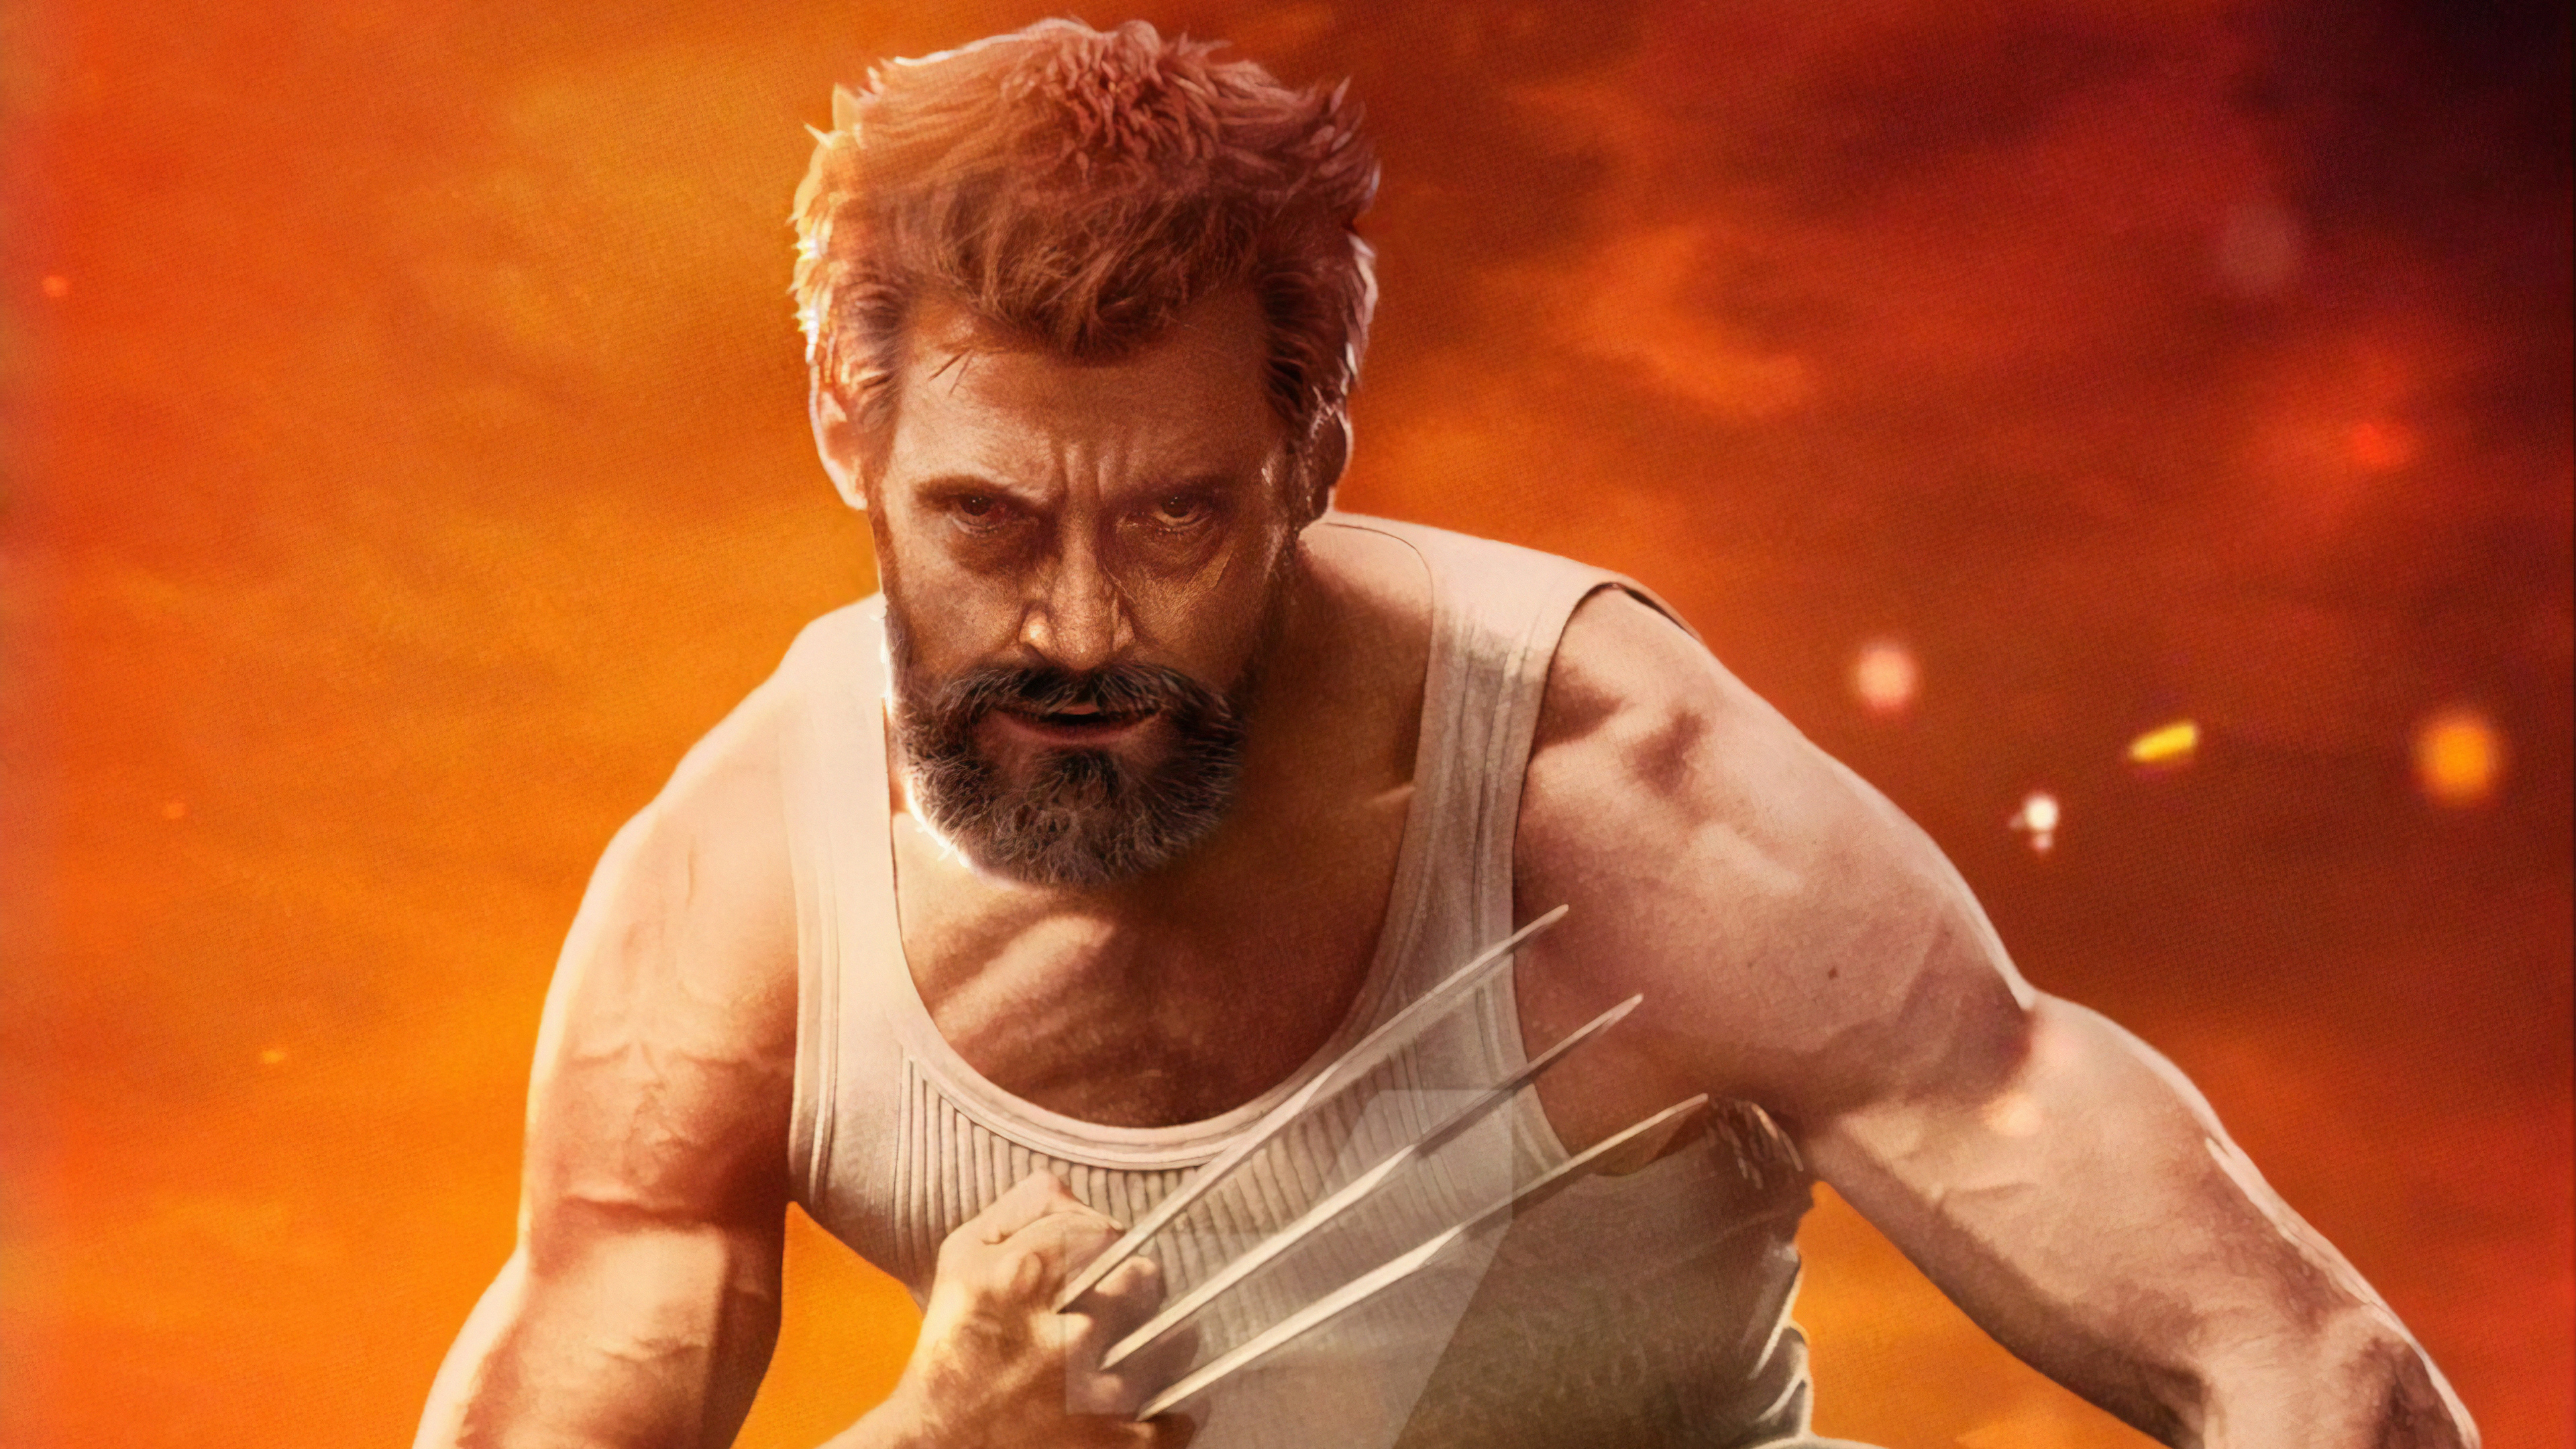 logan claws 1570918465 - Logan Claws - wolverine wallpapers, superheroes wallpapers, logan wallpapers, hd-wallpapers, digital art wallpapers, artwork wallpapers